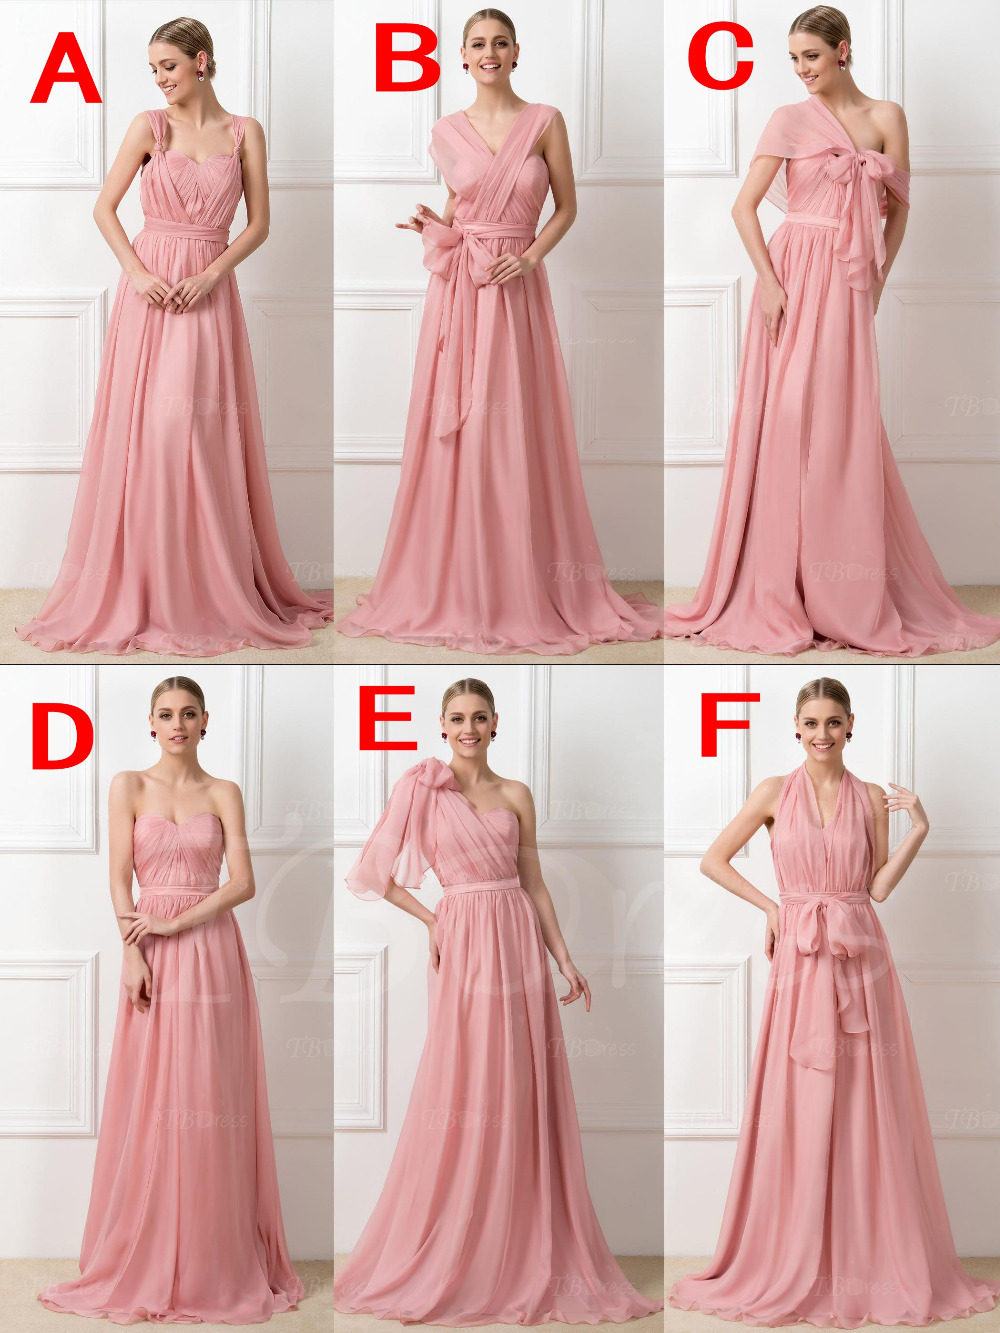 Chiffon Convertible Ruched Long Bridesmaid Dresses 2016 Lady 6 Styles Wedding Party Gowns Light Pink Silver Purple In From Weddings